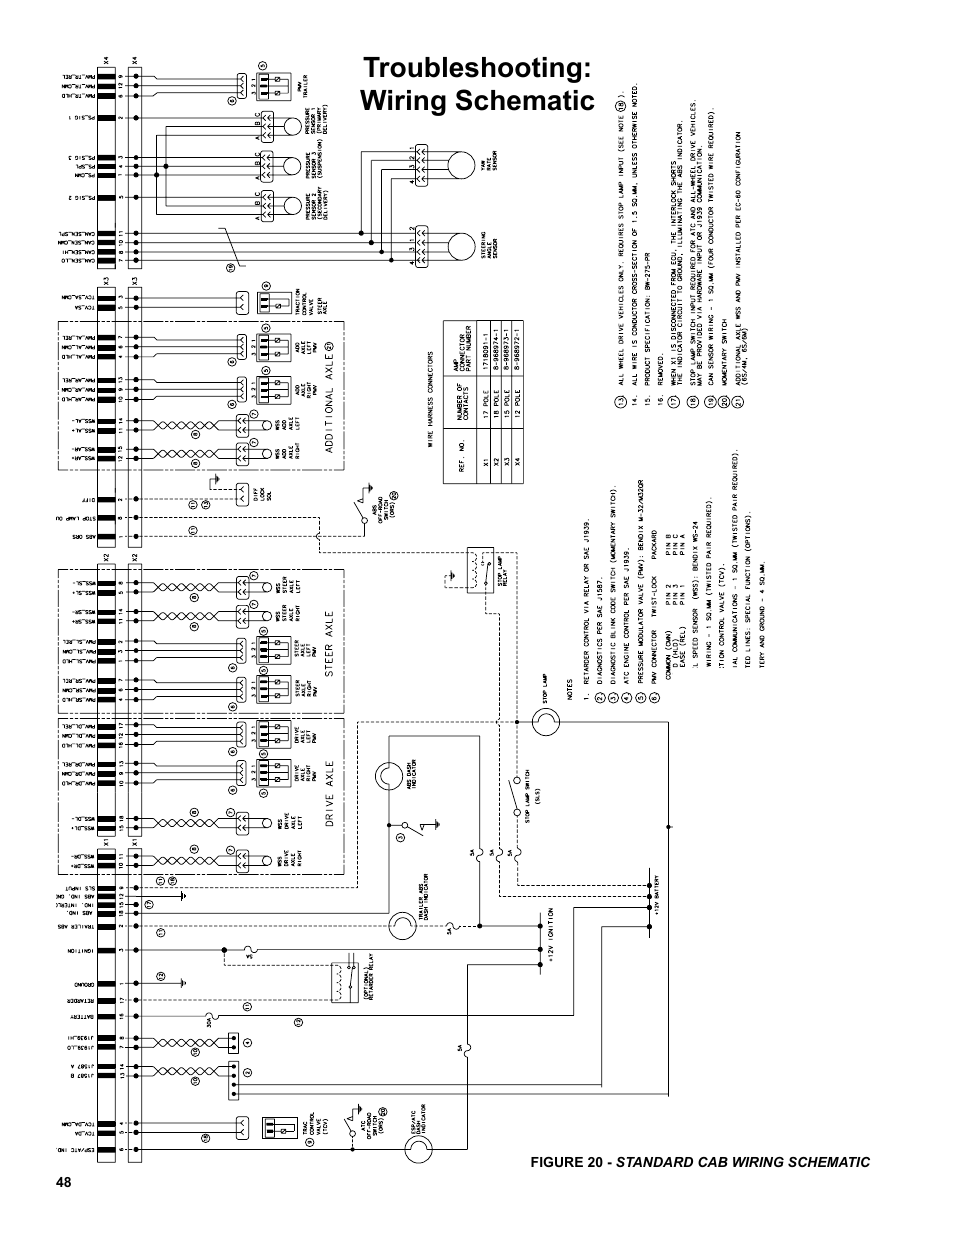 Troubleshooting Wiring Schematic